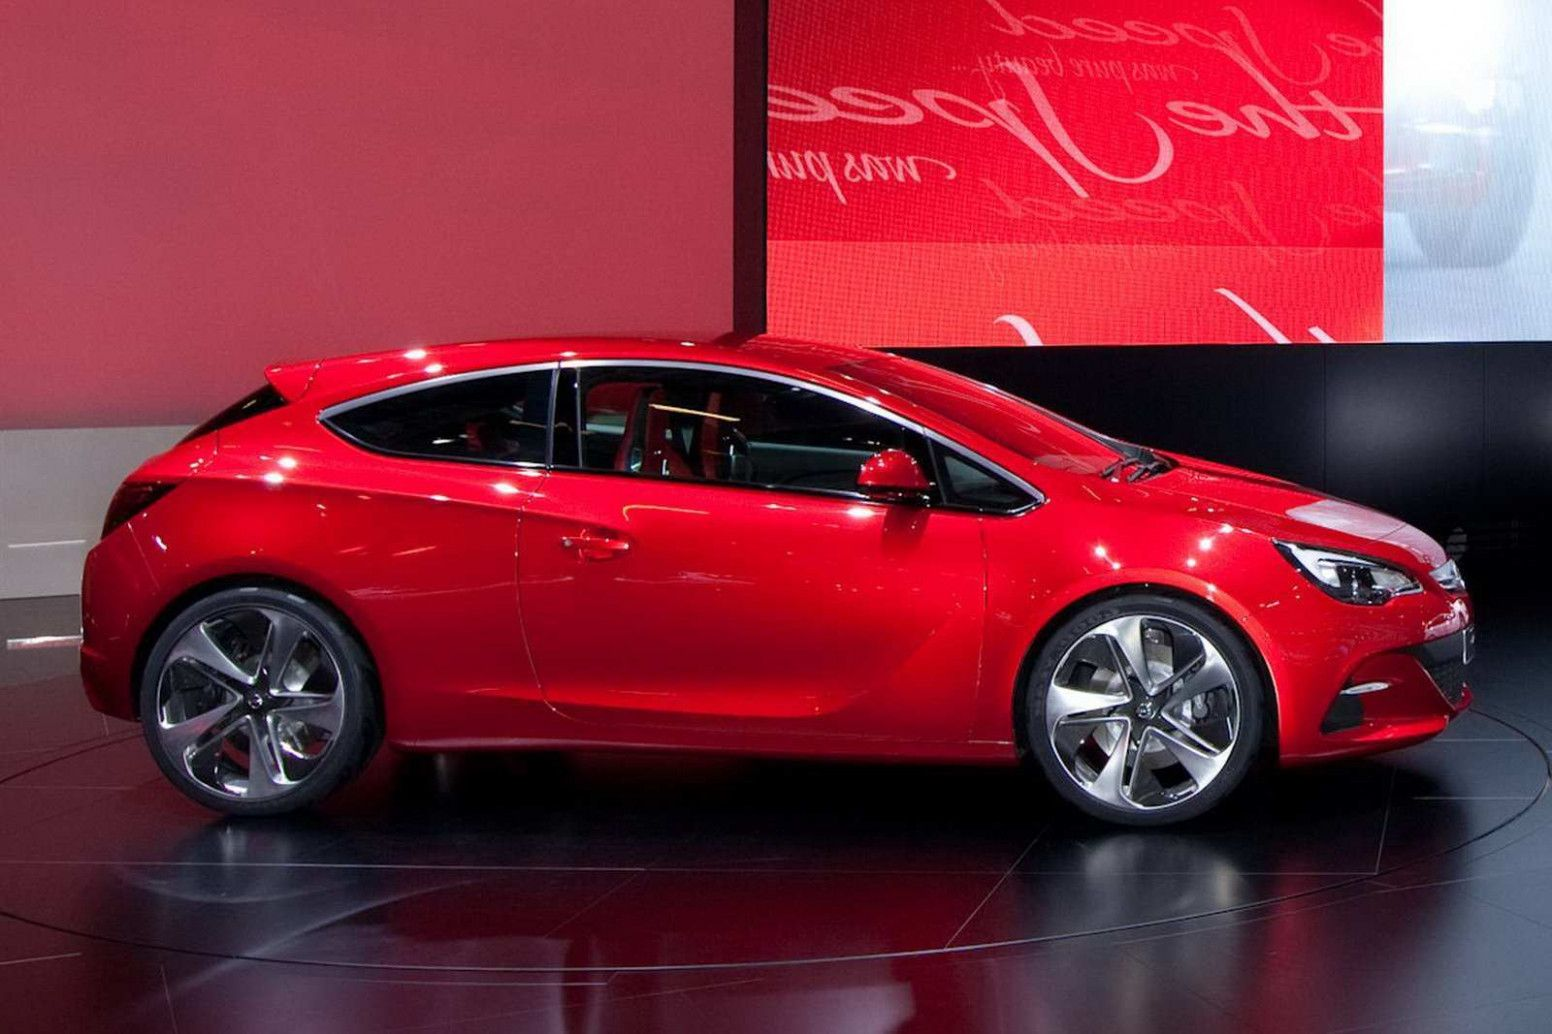 2020 Opel Astra Gtc Will Be A Thing Of The Past And Heres Why Opel The Past Buick Cascada